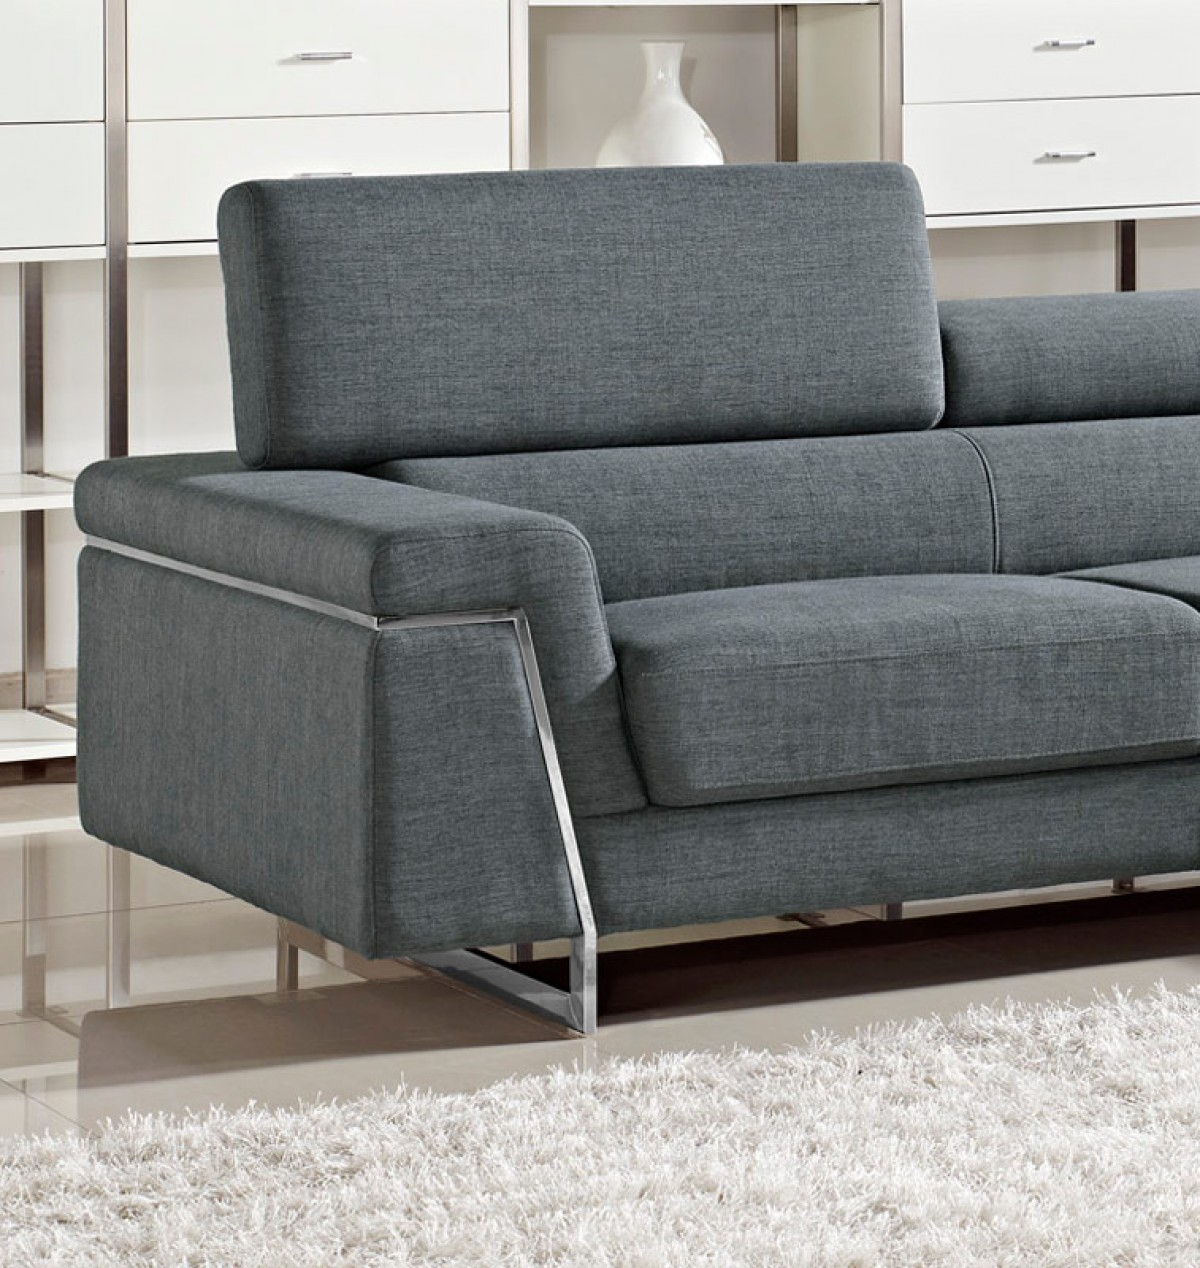 Modern Fabric Sectional Sofa Set